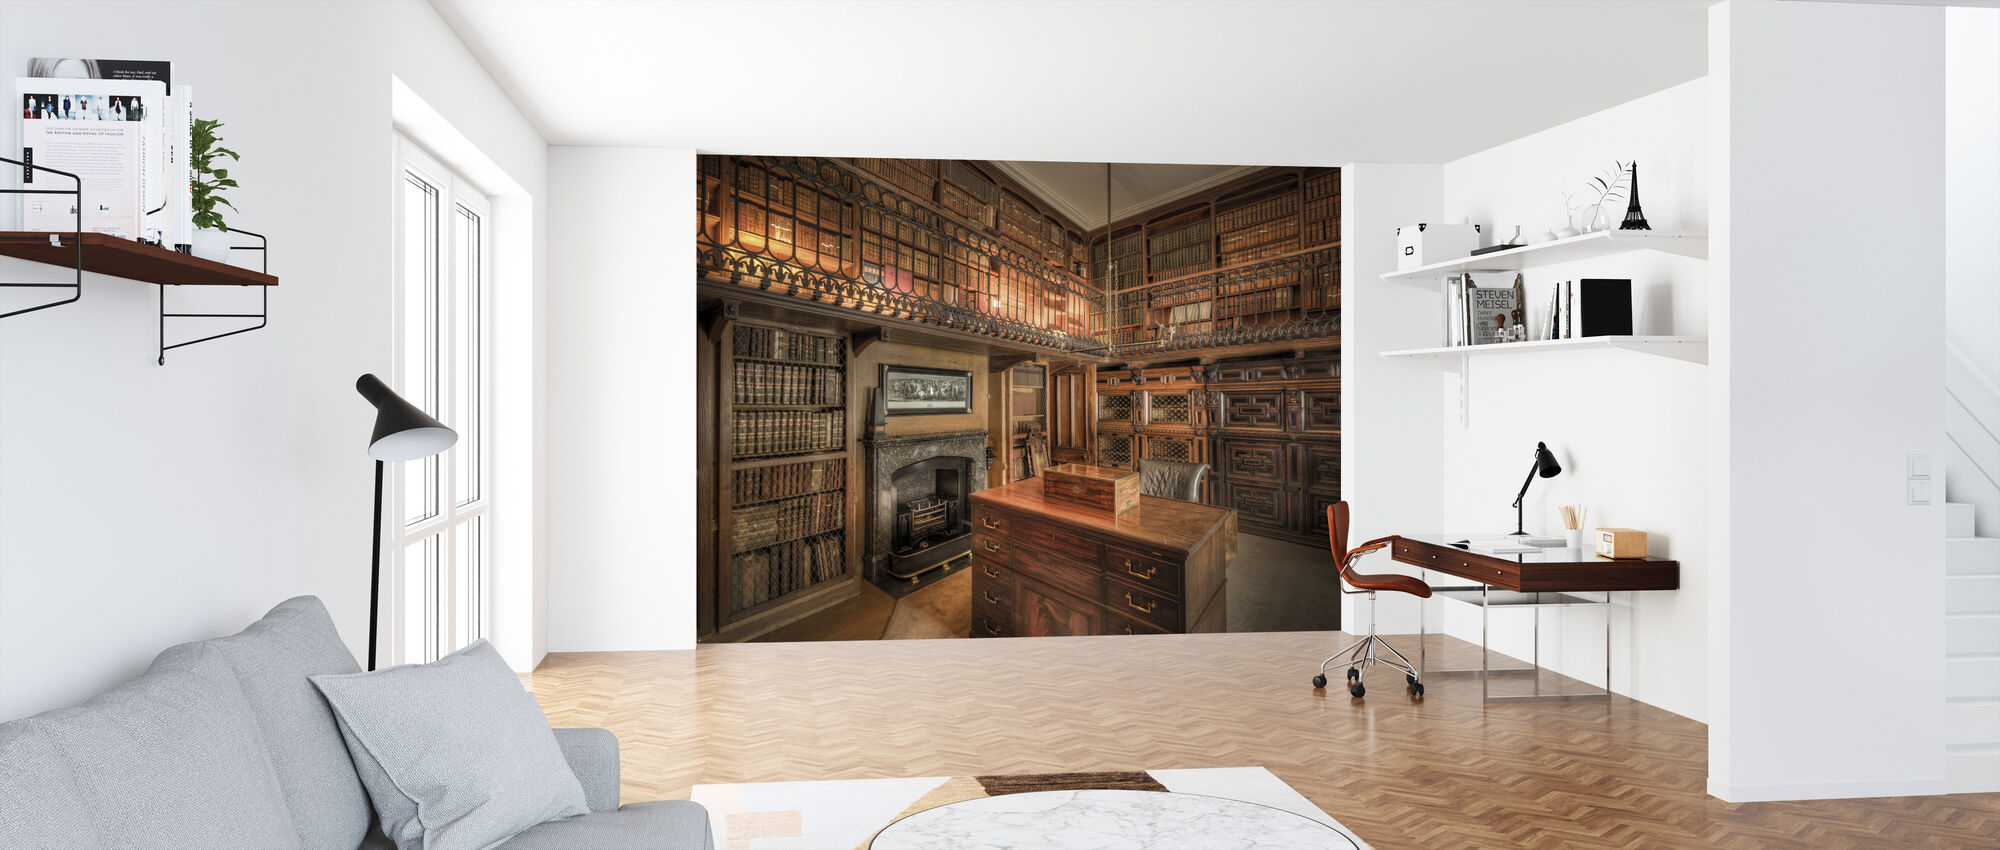 Library and Study Room - Wallpaper - Office